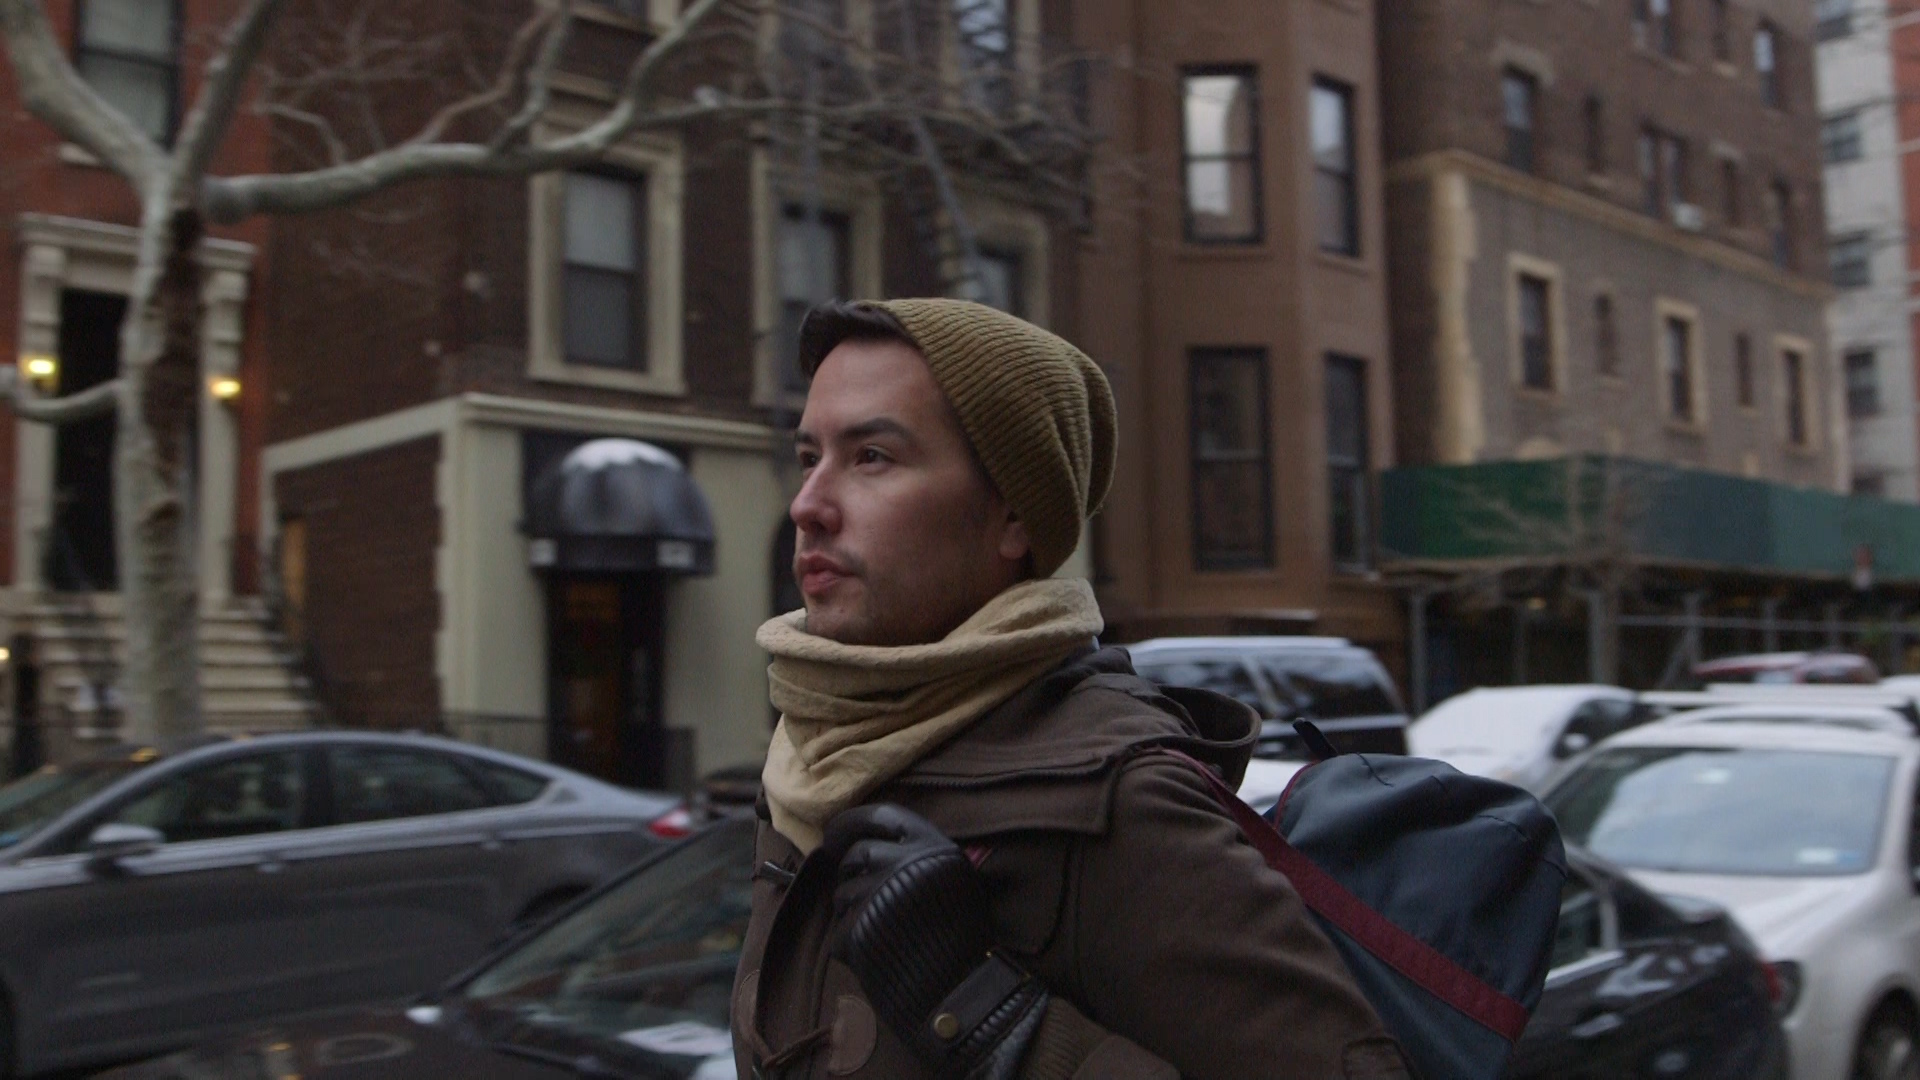 Tommy Pico walking down the street in New York.jpg